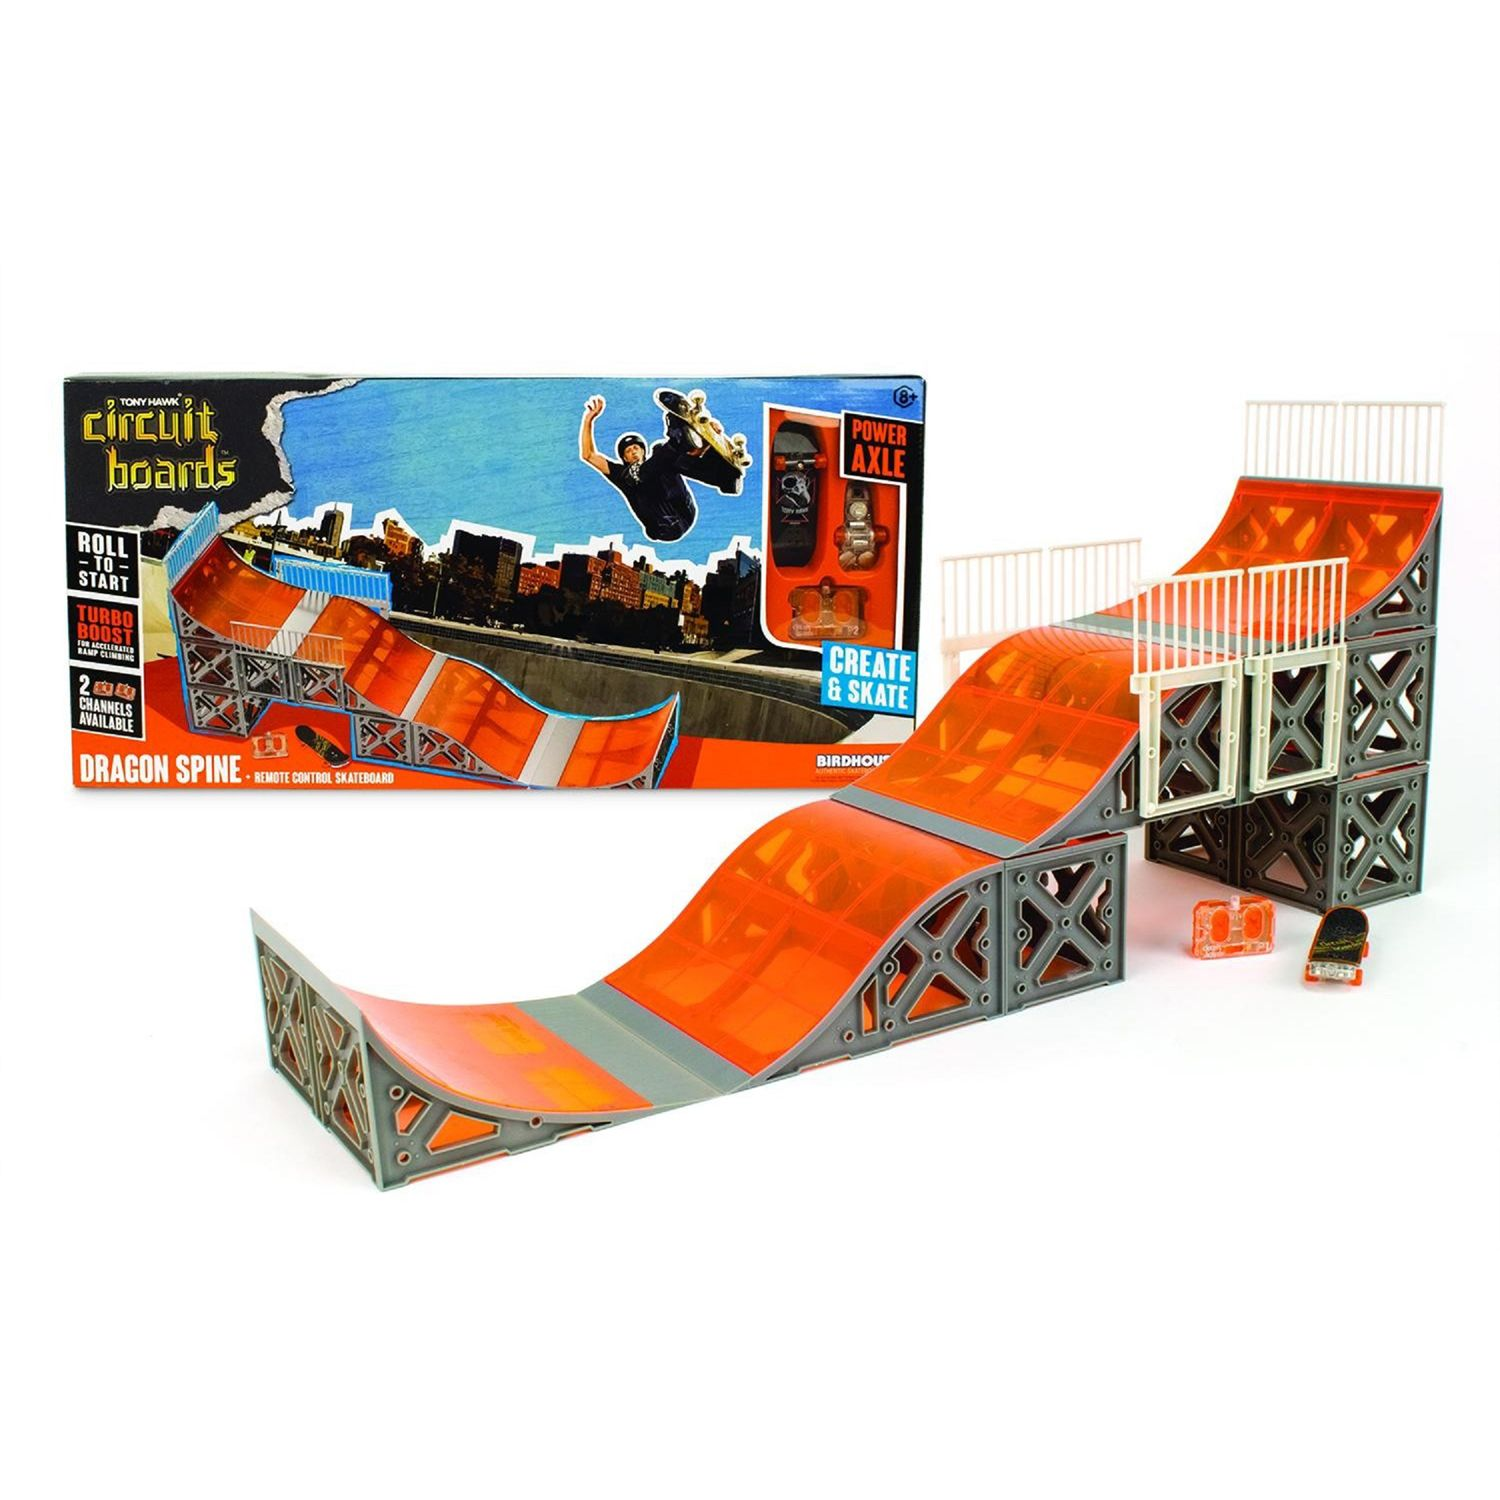 hexbug tony hawk circuit boards dragon spine ramp set rh kohls com